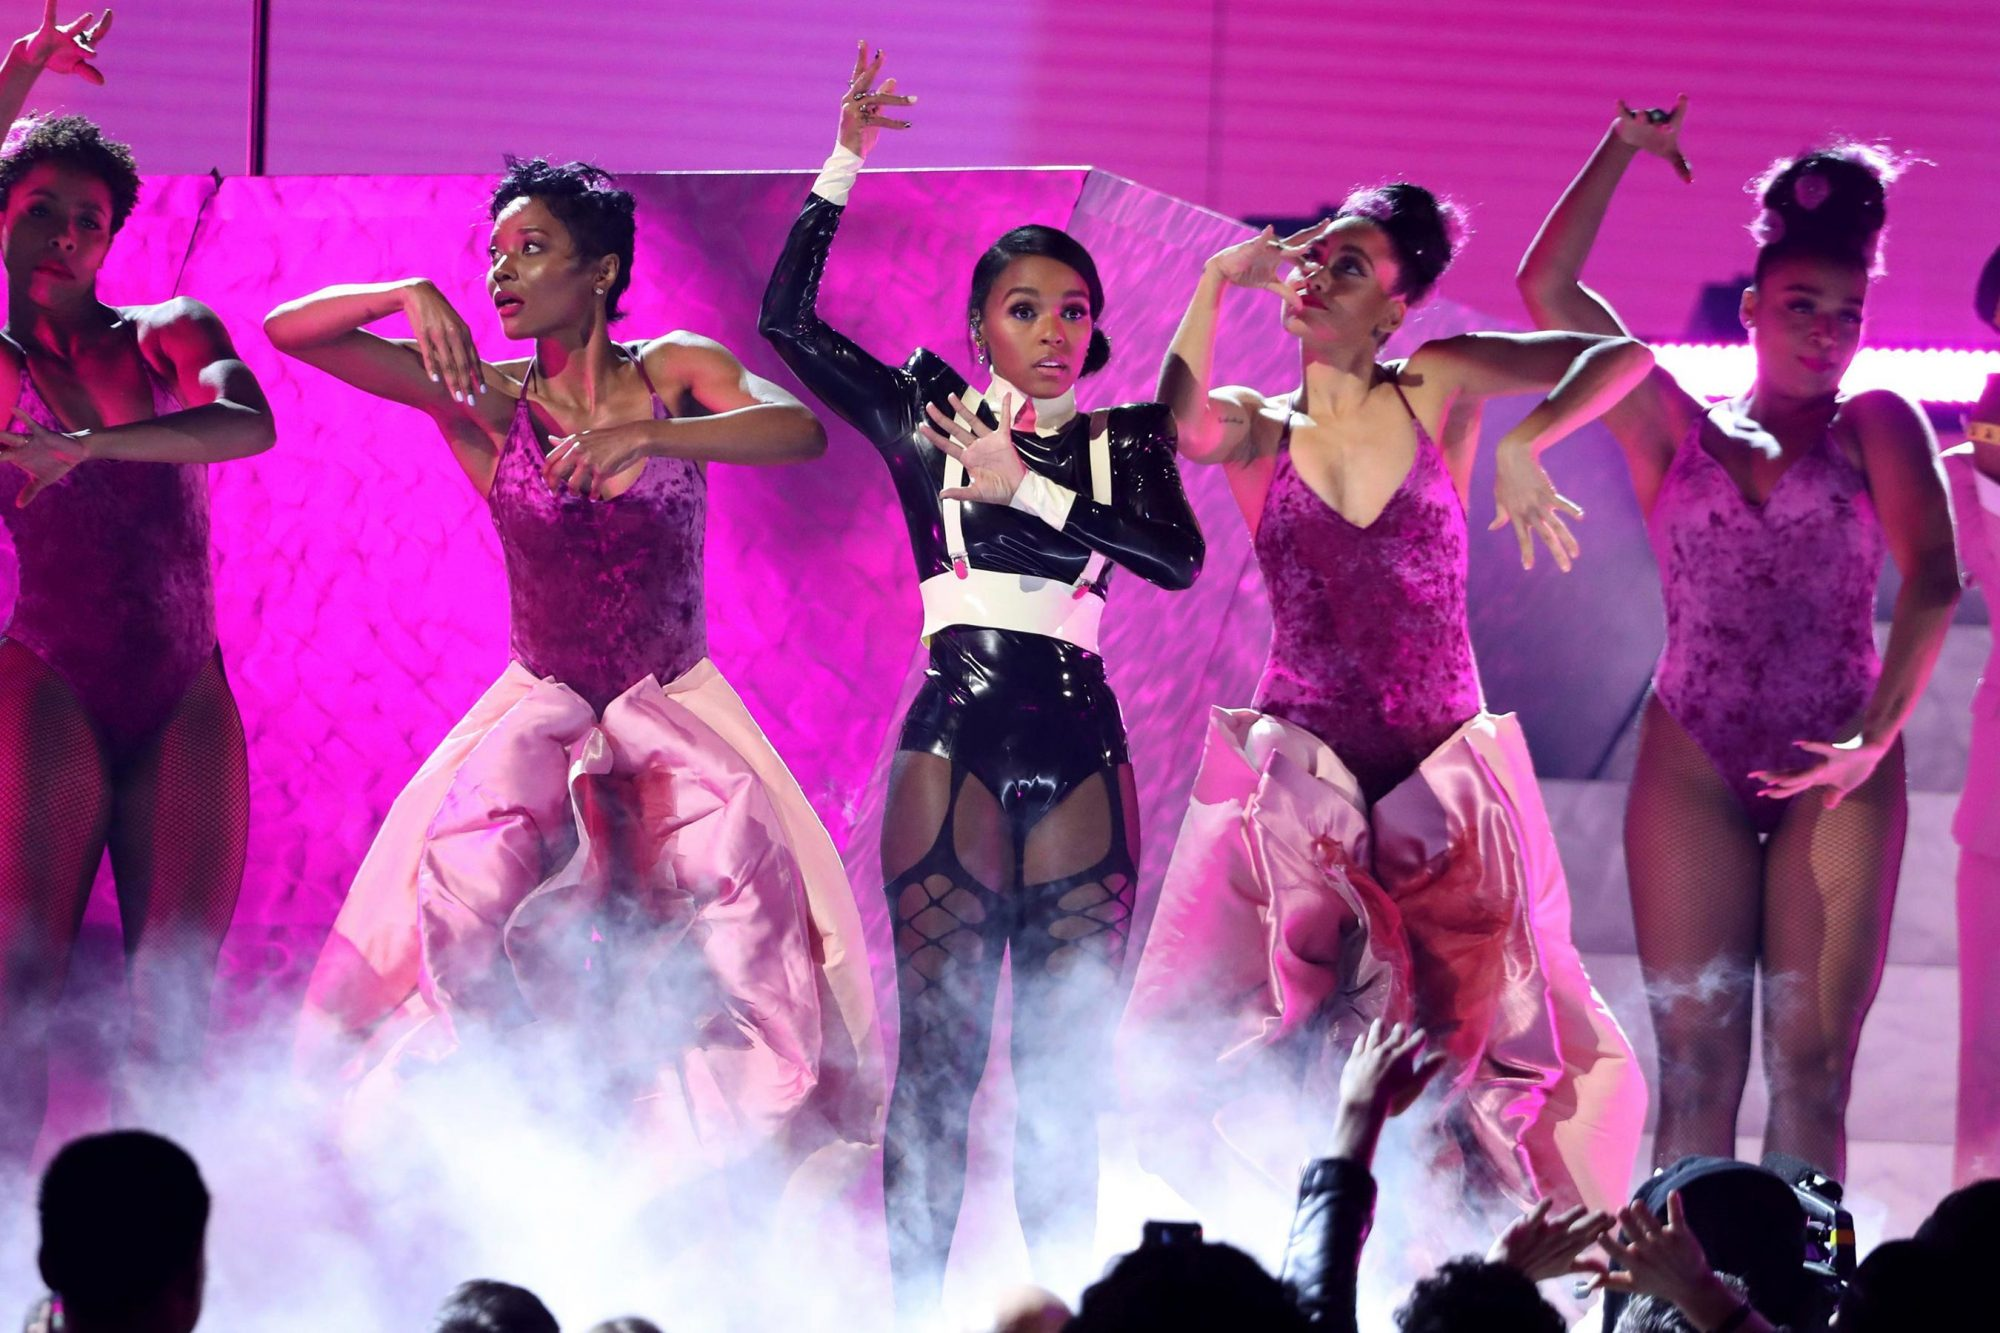 61st Annual Grammy Awards - Show, Los Angeles, USA - 10 Feb 2019